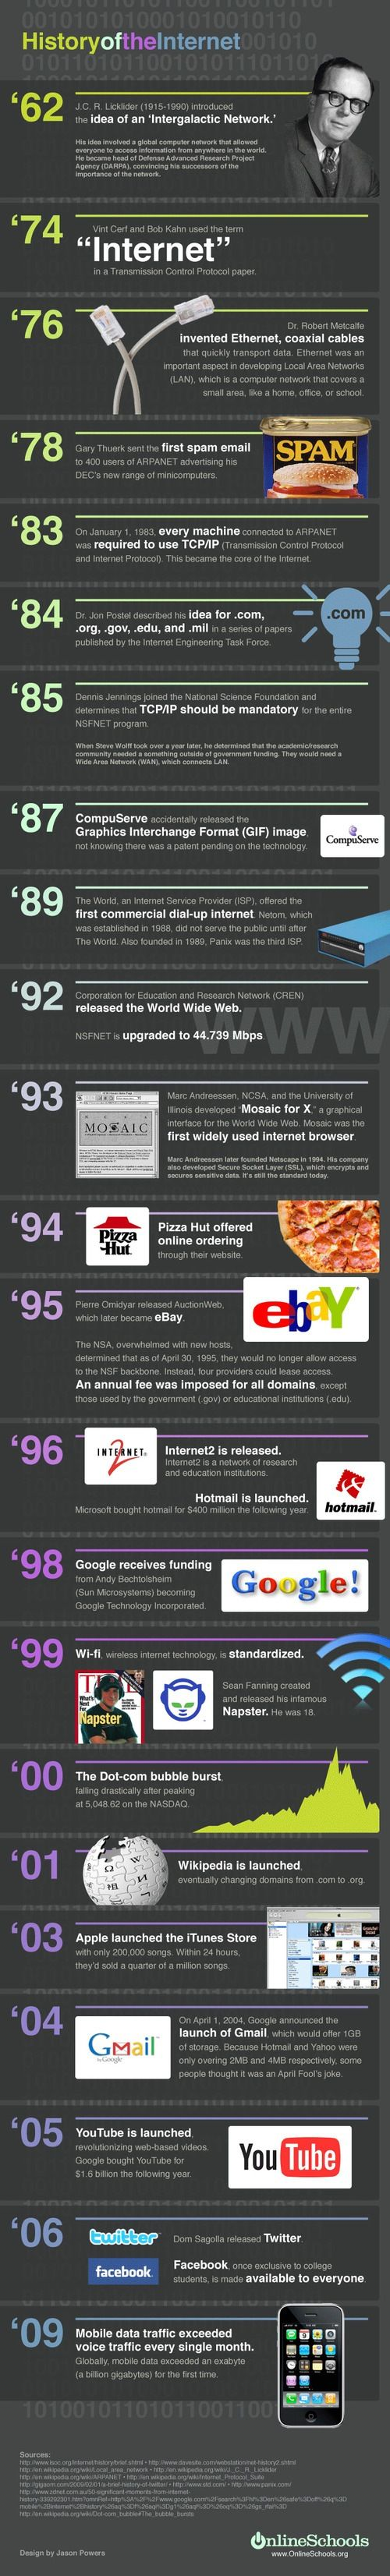 Did you know the history of Internet?